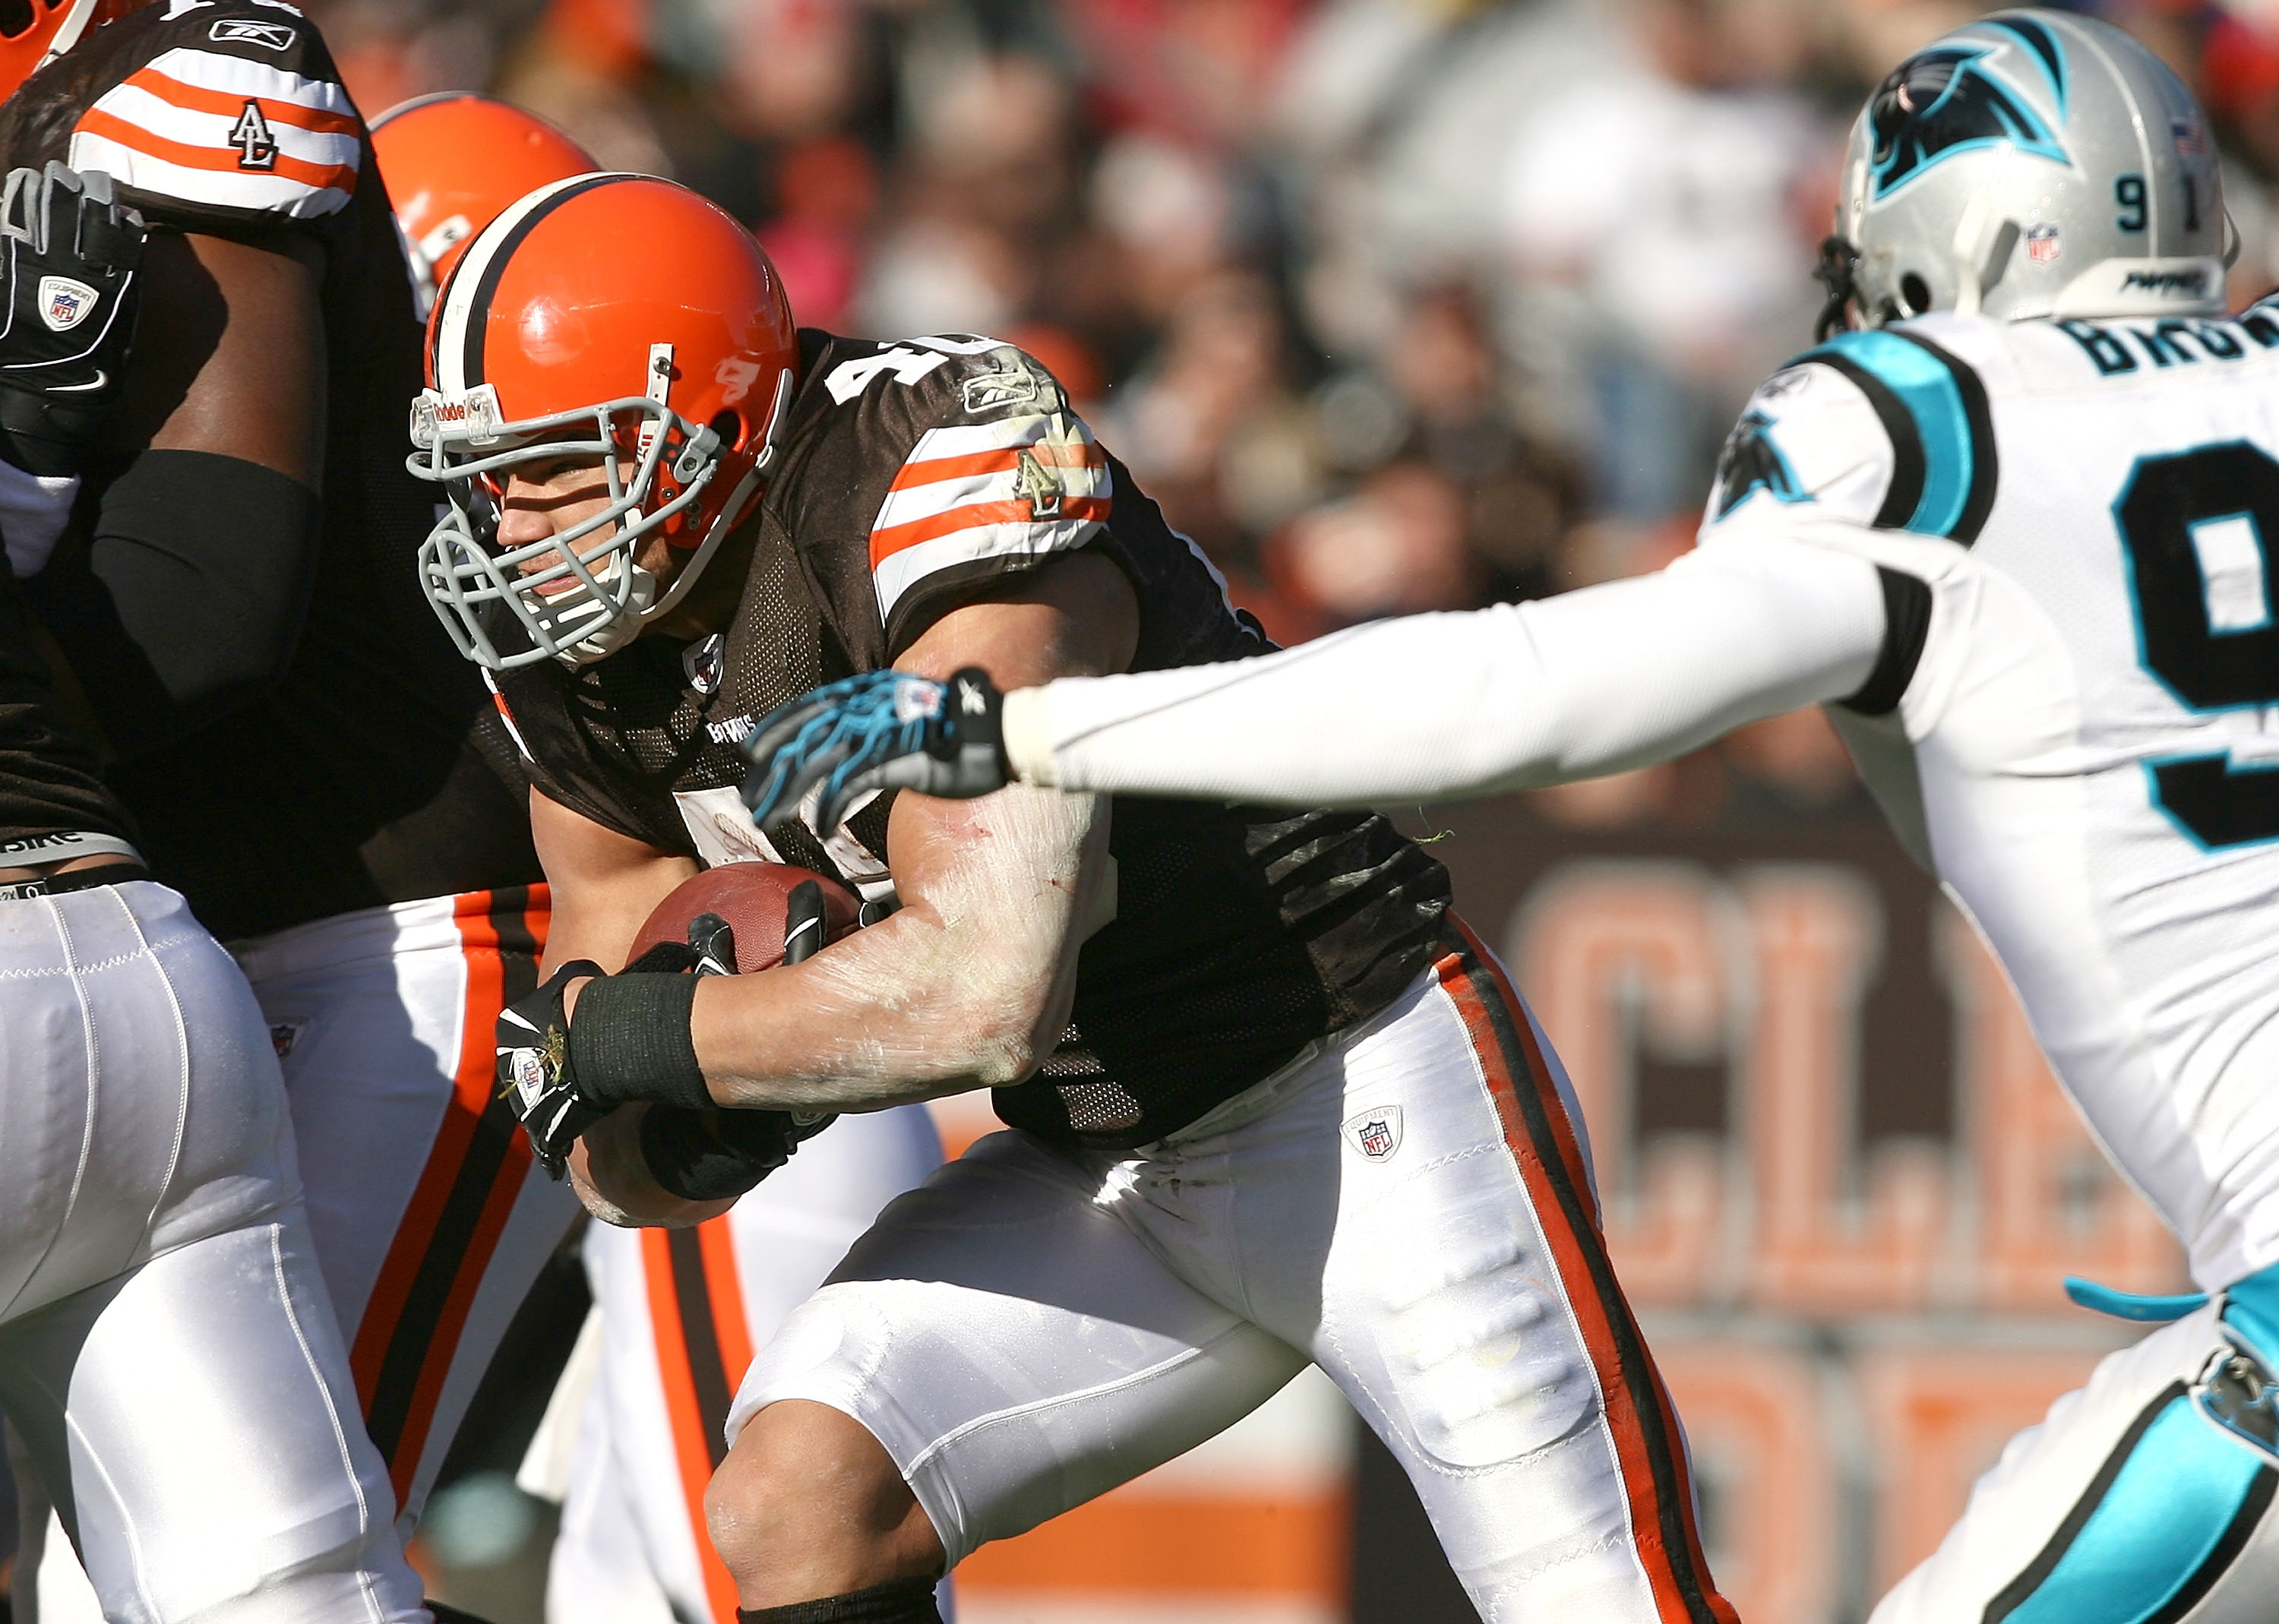 adf6f60f6ce CLEVELAND - NOVEMBER 28: Running back Peyton Hillis #40 of the Cleveland  Browns scores